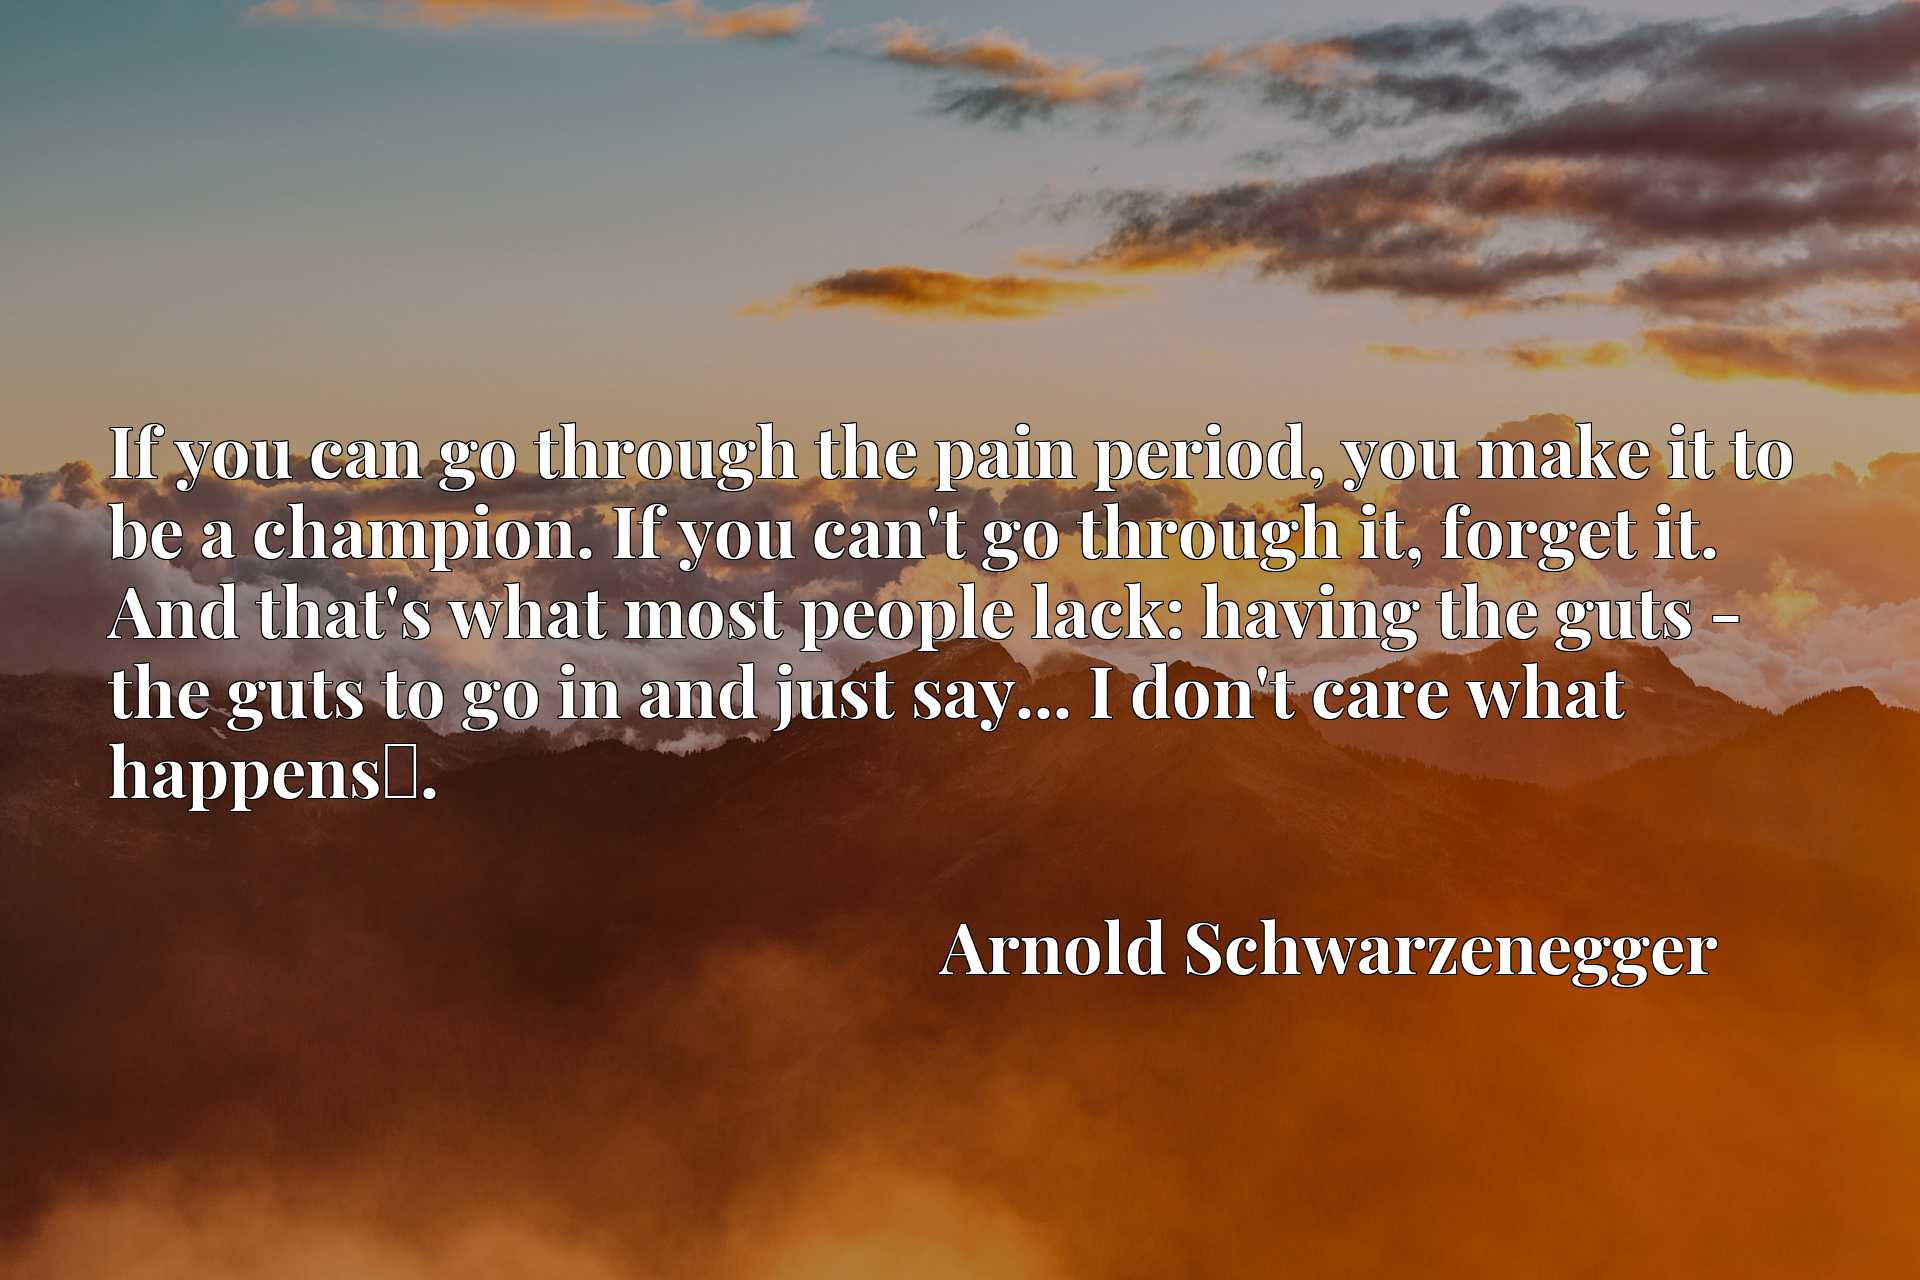 If you can go through the pain period, you make it to be a champion. If you can't go through it, forget it. And that's what most people lack: having the guts - the guts to go in and just say... I don't care what happensx9d.